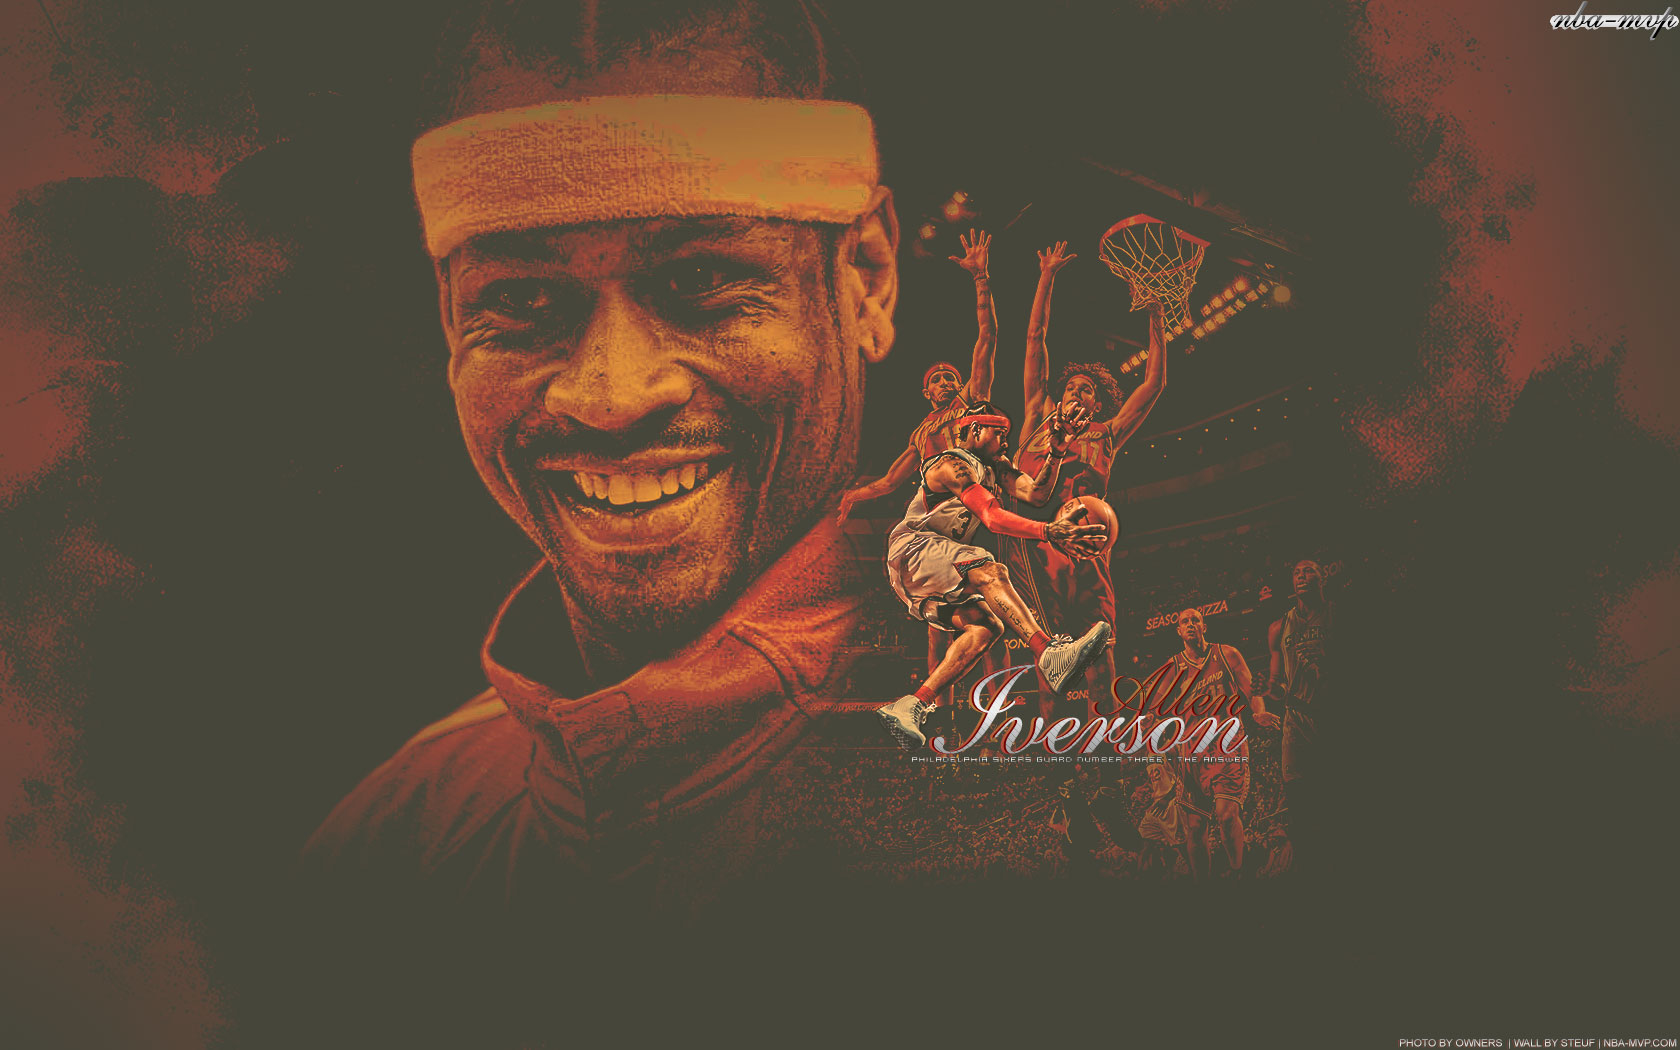 Allen Iverson Wallpapers | Basketball Wallpapers at ...